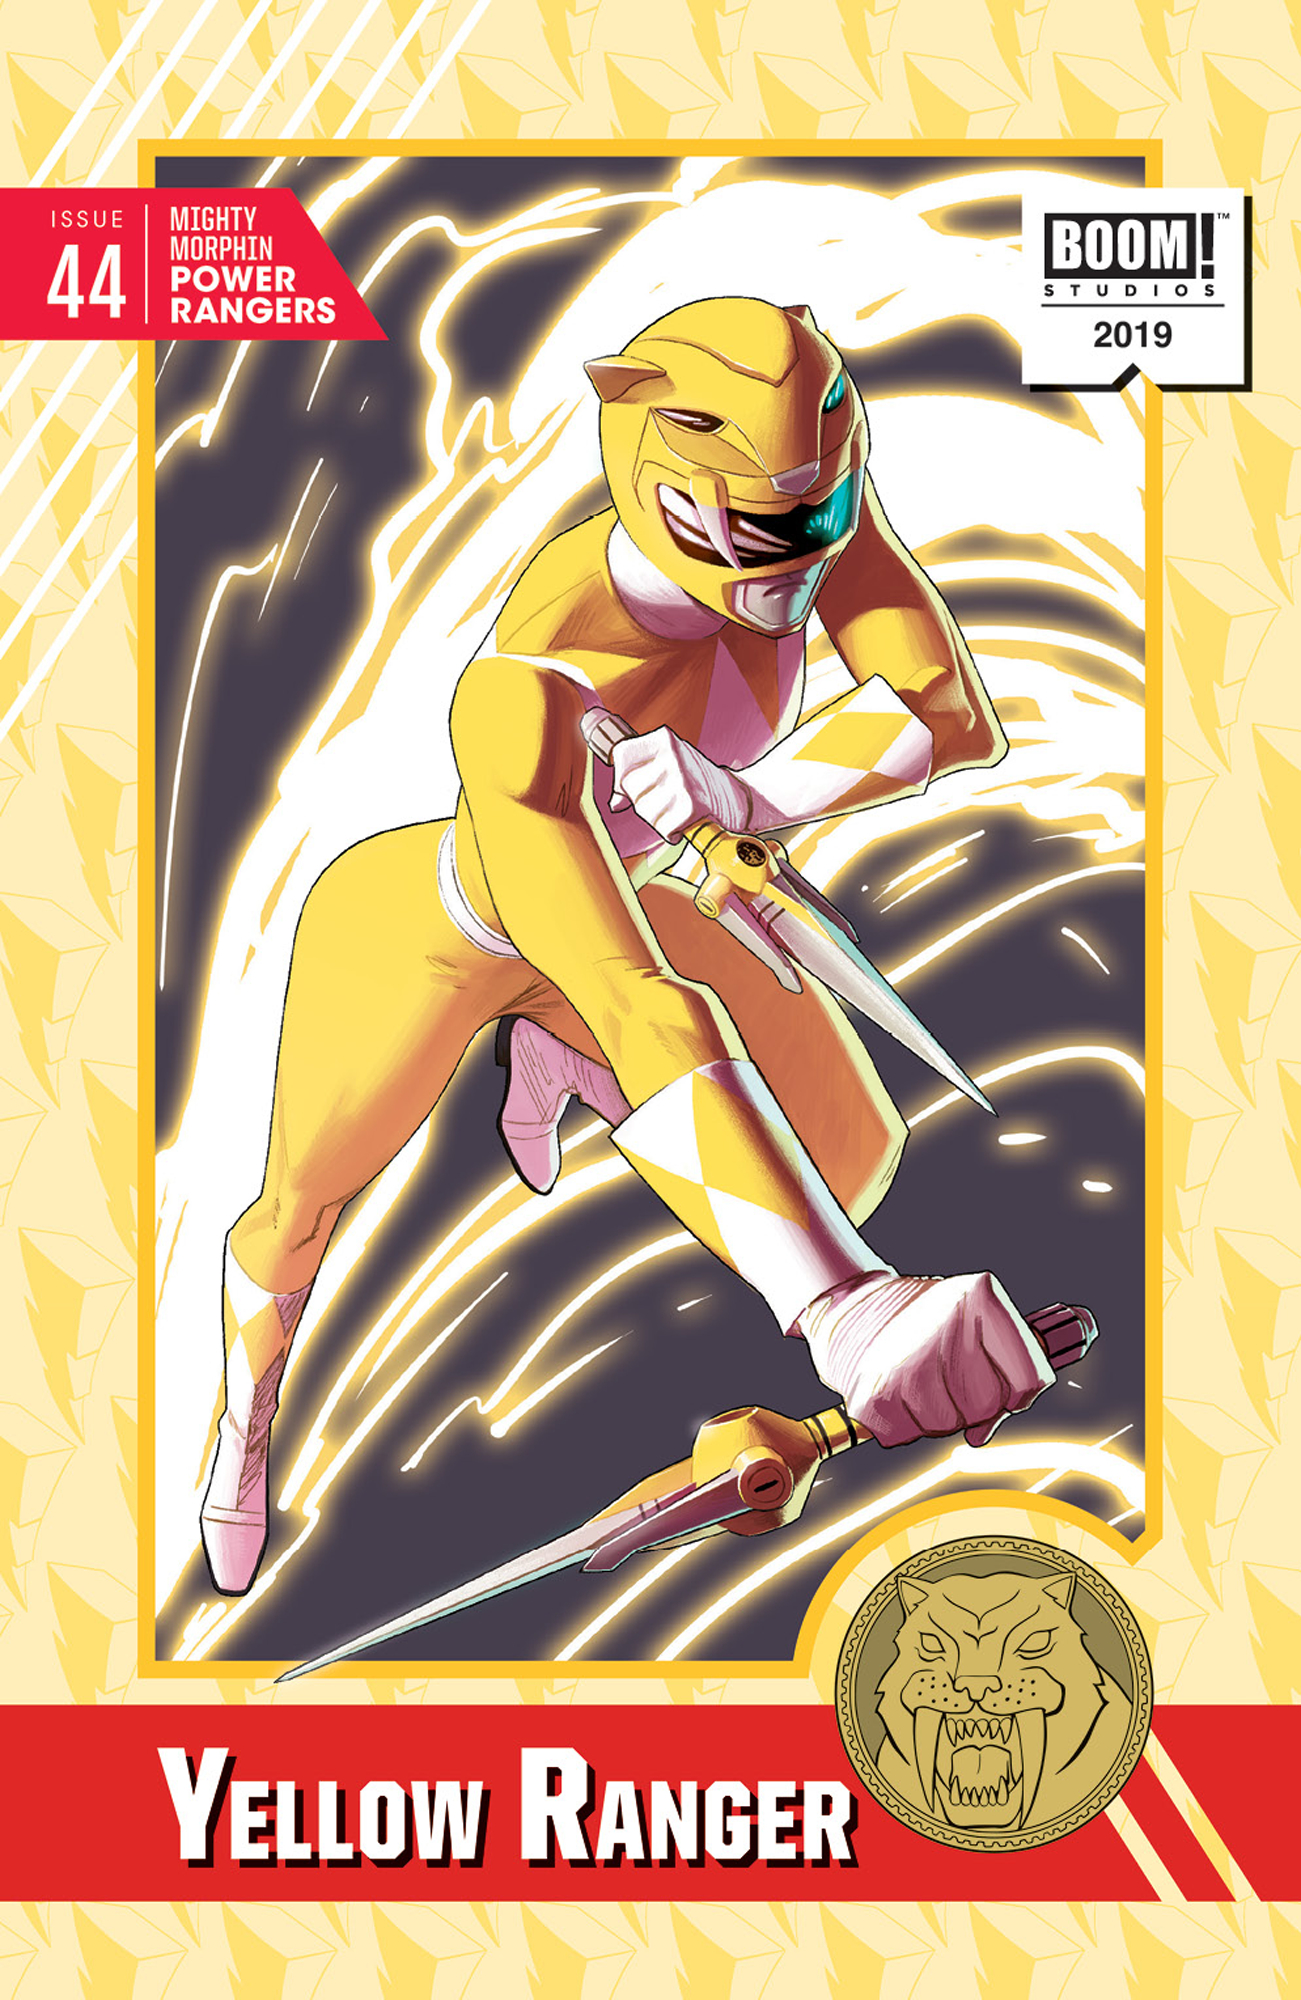 MIGHTY MORPHIN POWER RANGERS #44 20 COPY ANKA INCV (Net)